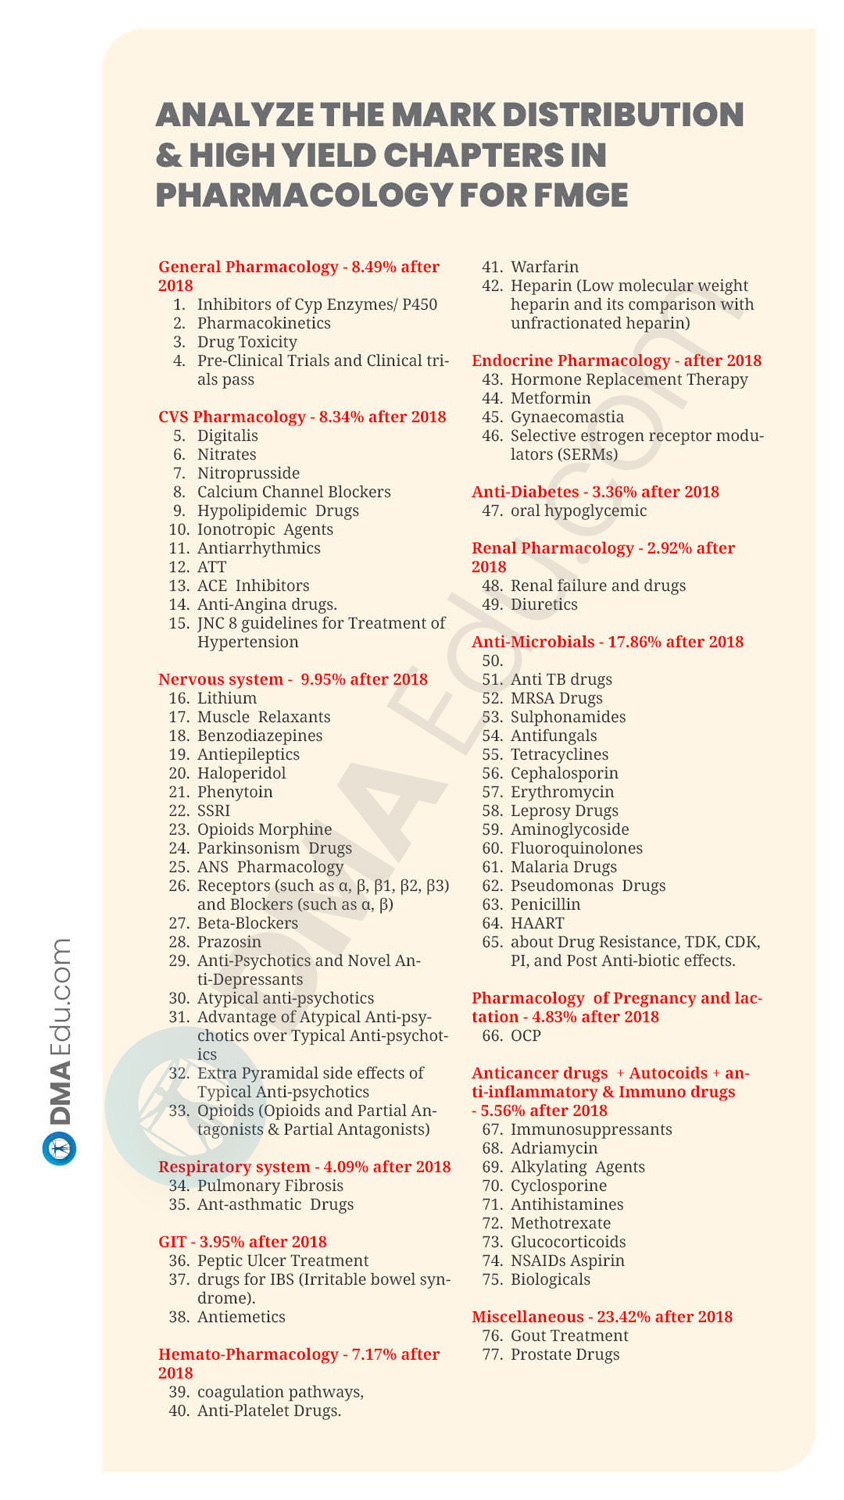 19 SUBJECTS HIGH YILD CHAPTER3 How to Prepare Pharmacology for FMGE 2021? FMGE, FMGE preparation, FMGE Tips